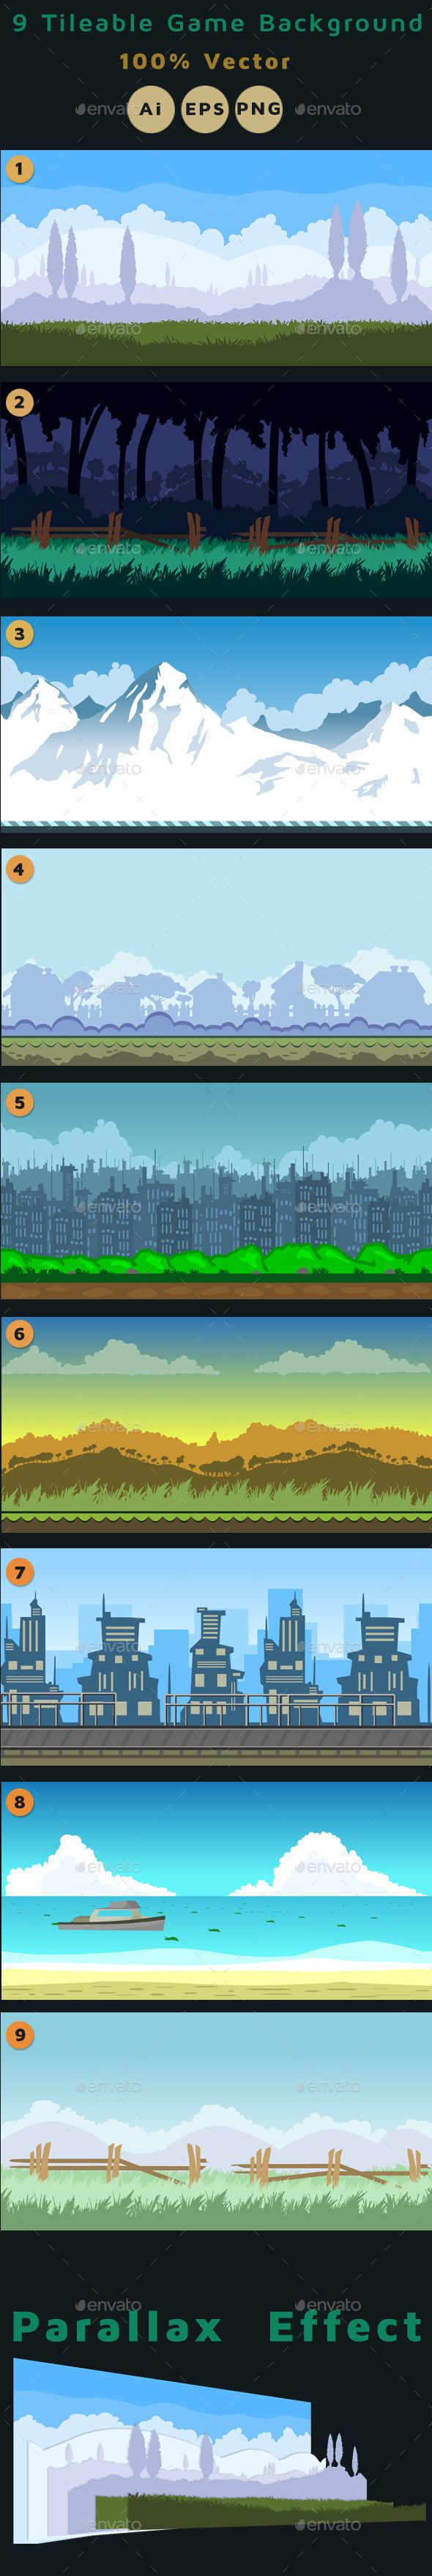 9 Tileable Vector Game Background - Backgrounds Game Assets